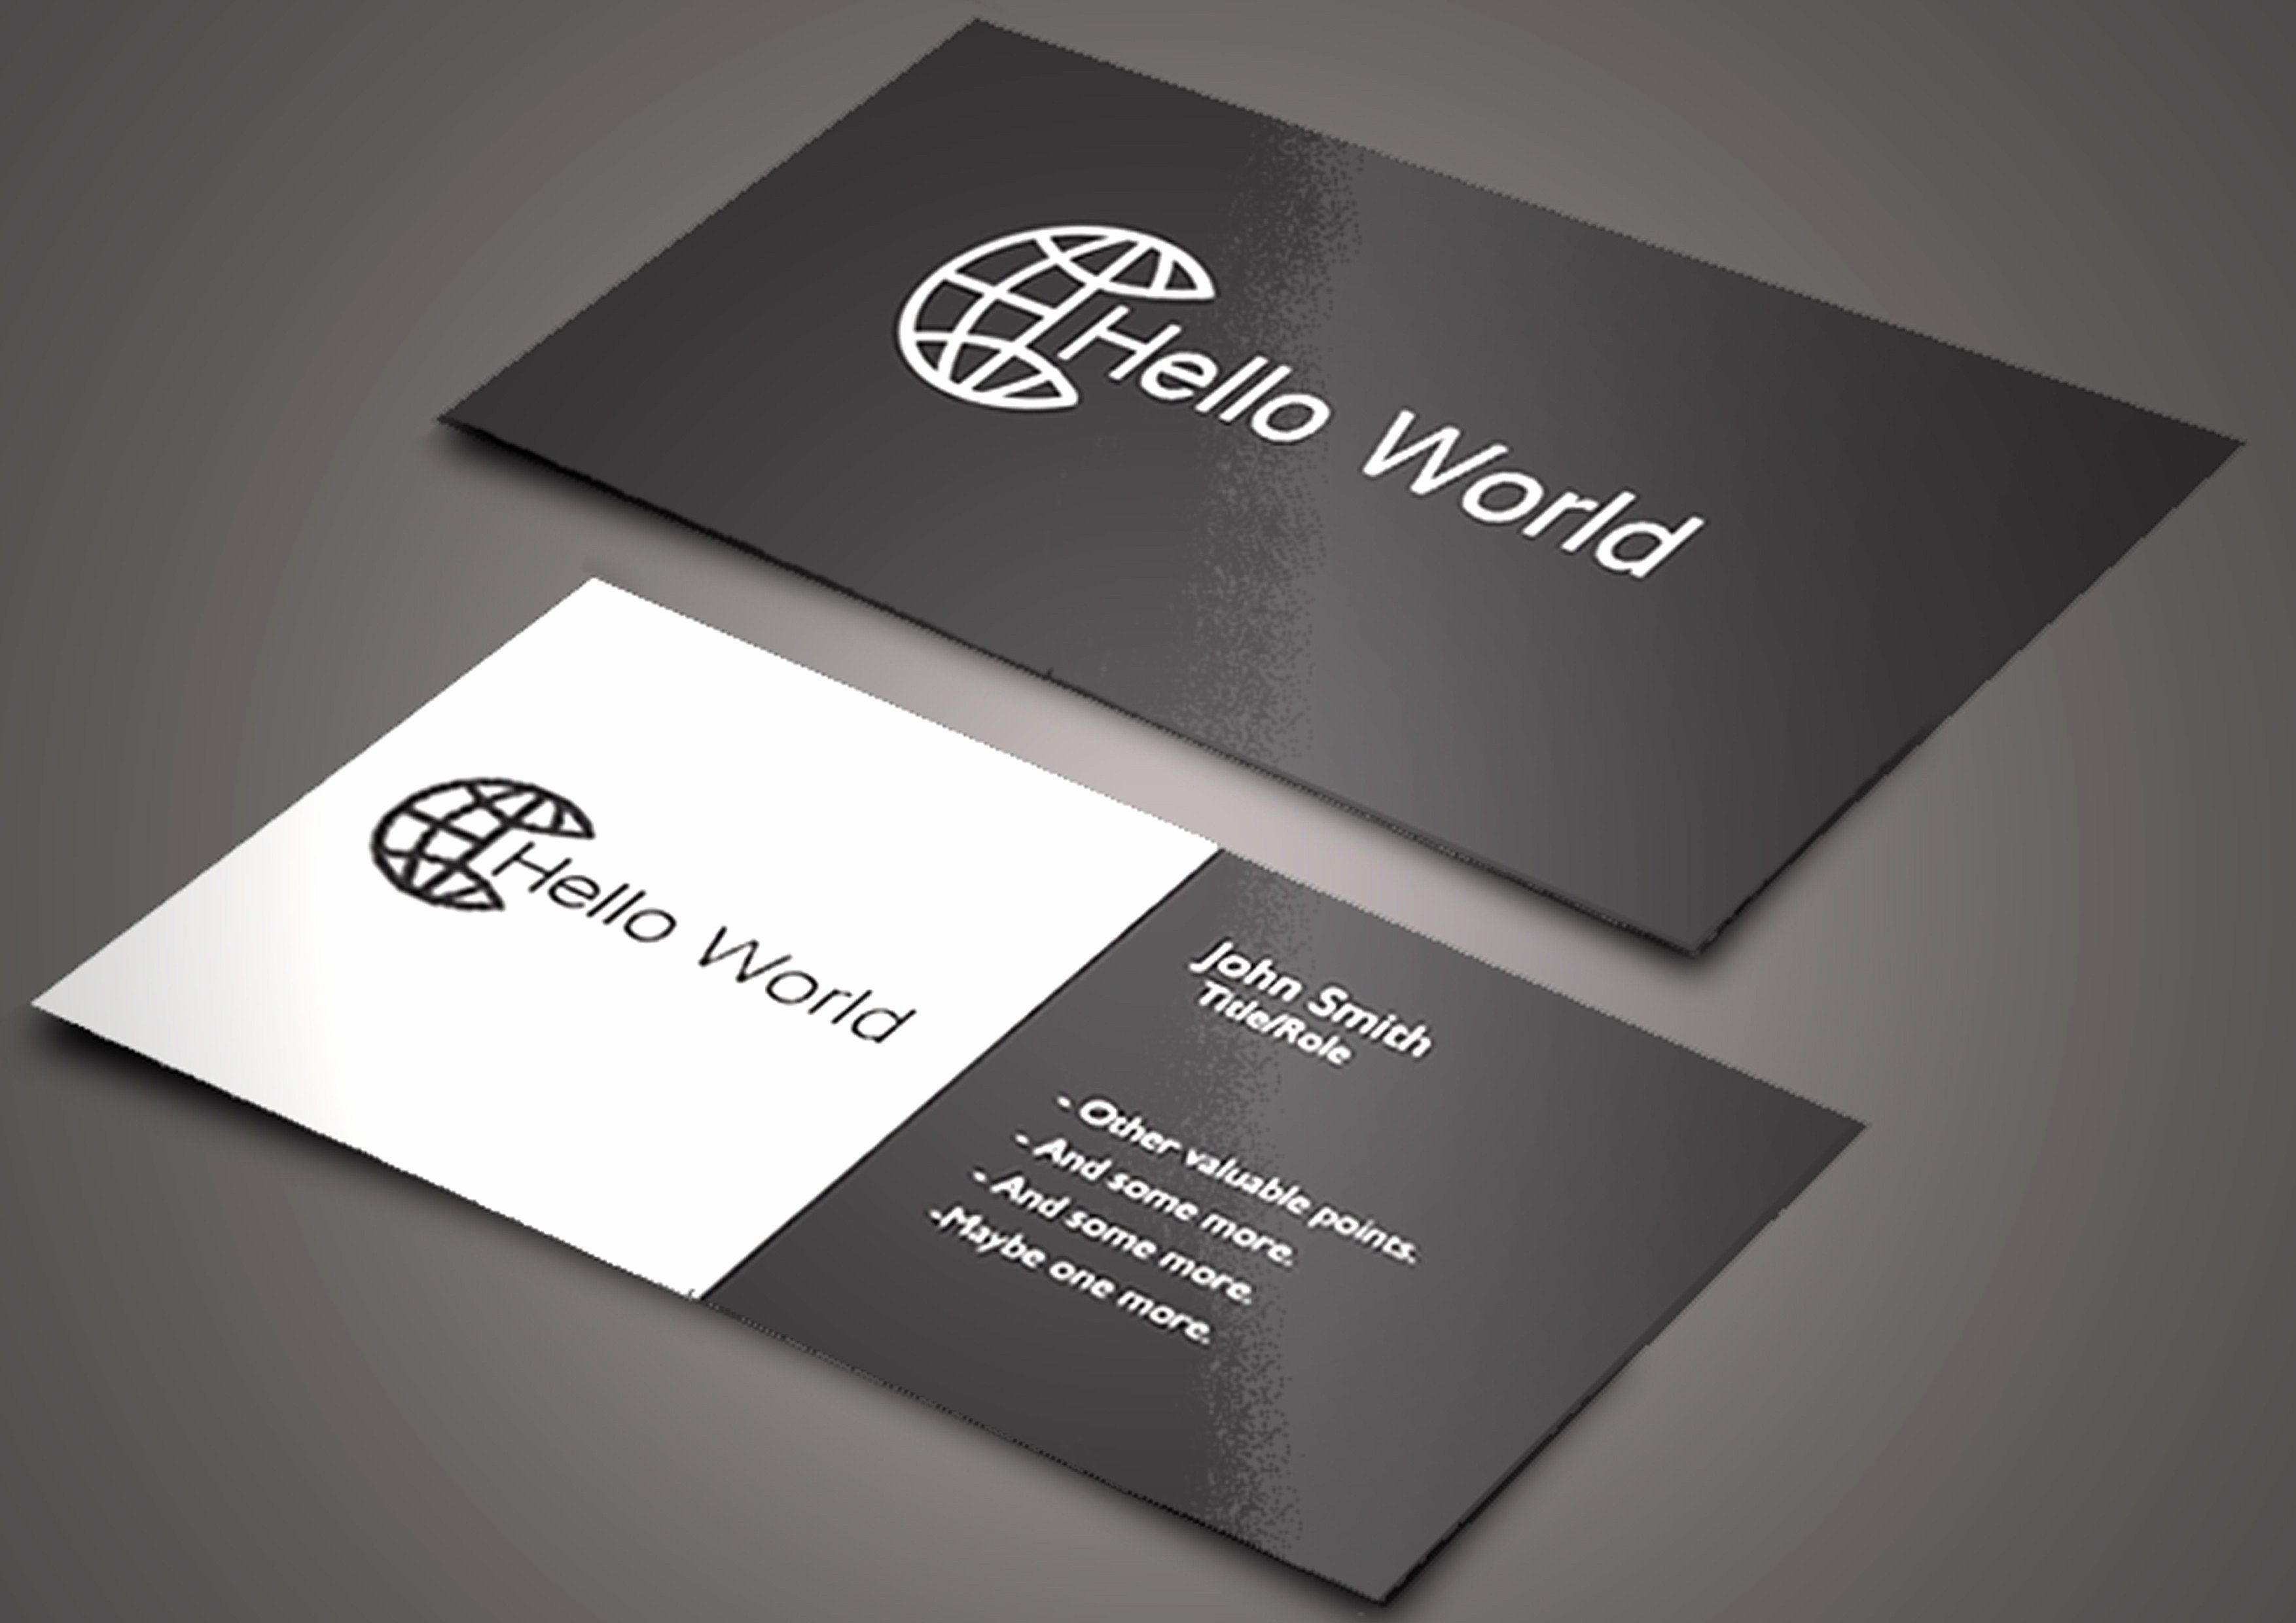 Rounded Business Card Template Inspirational Business Card Rounded Corners Templat Free Business Card Templates Clean Business Card Design Round Business Cards